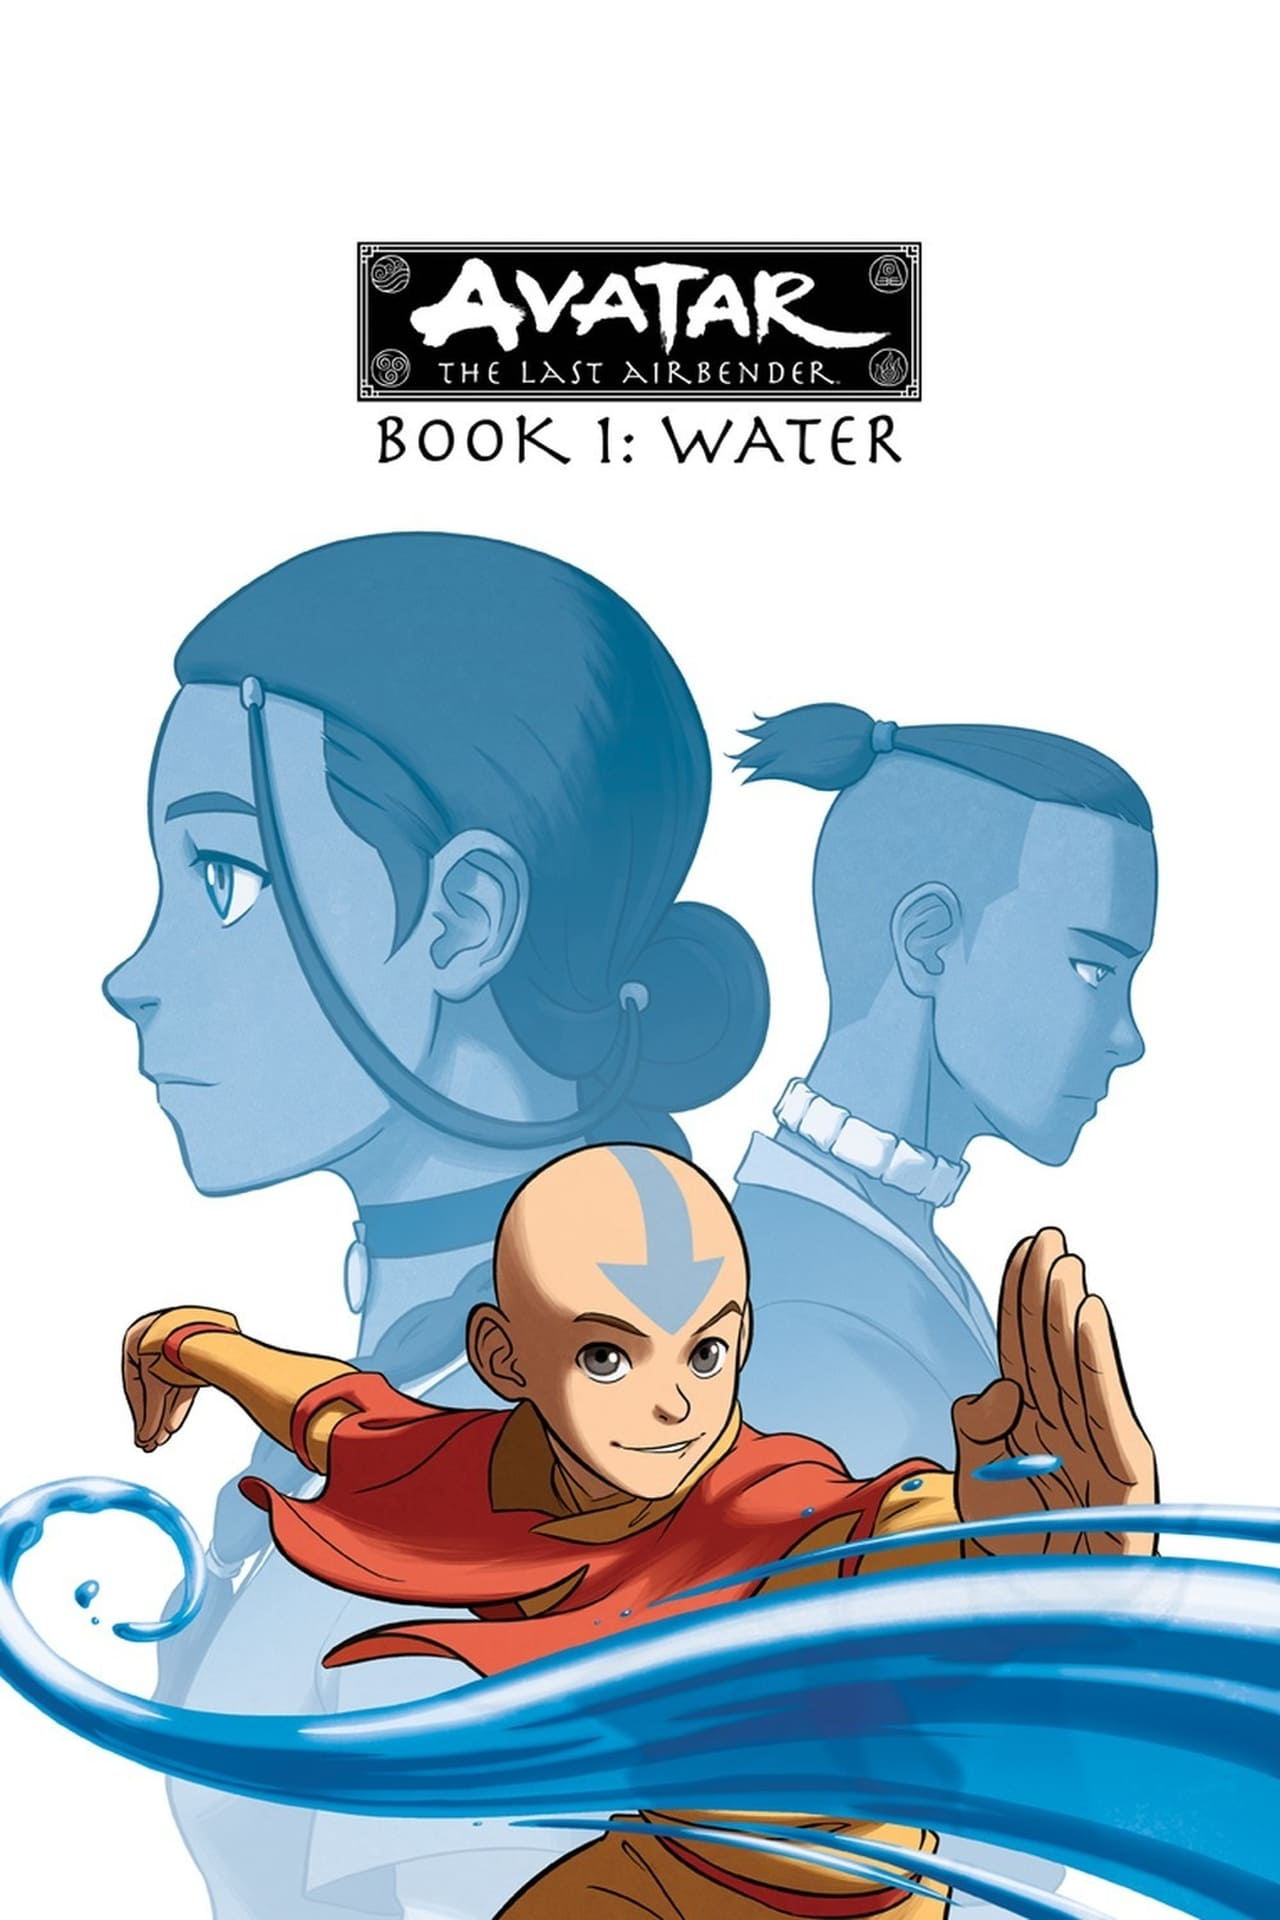 Putlocker Avatar: The Last Airbender Season 1 (2005)